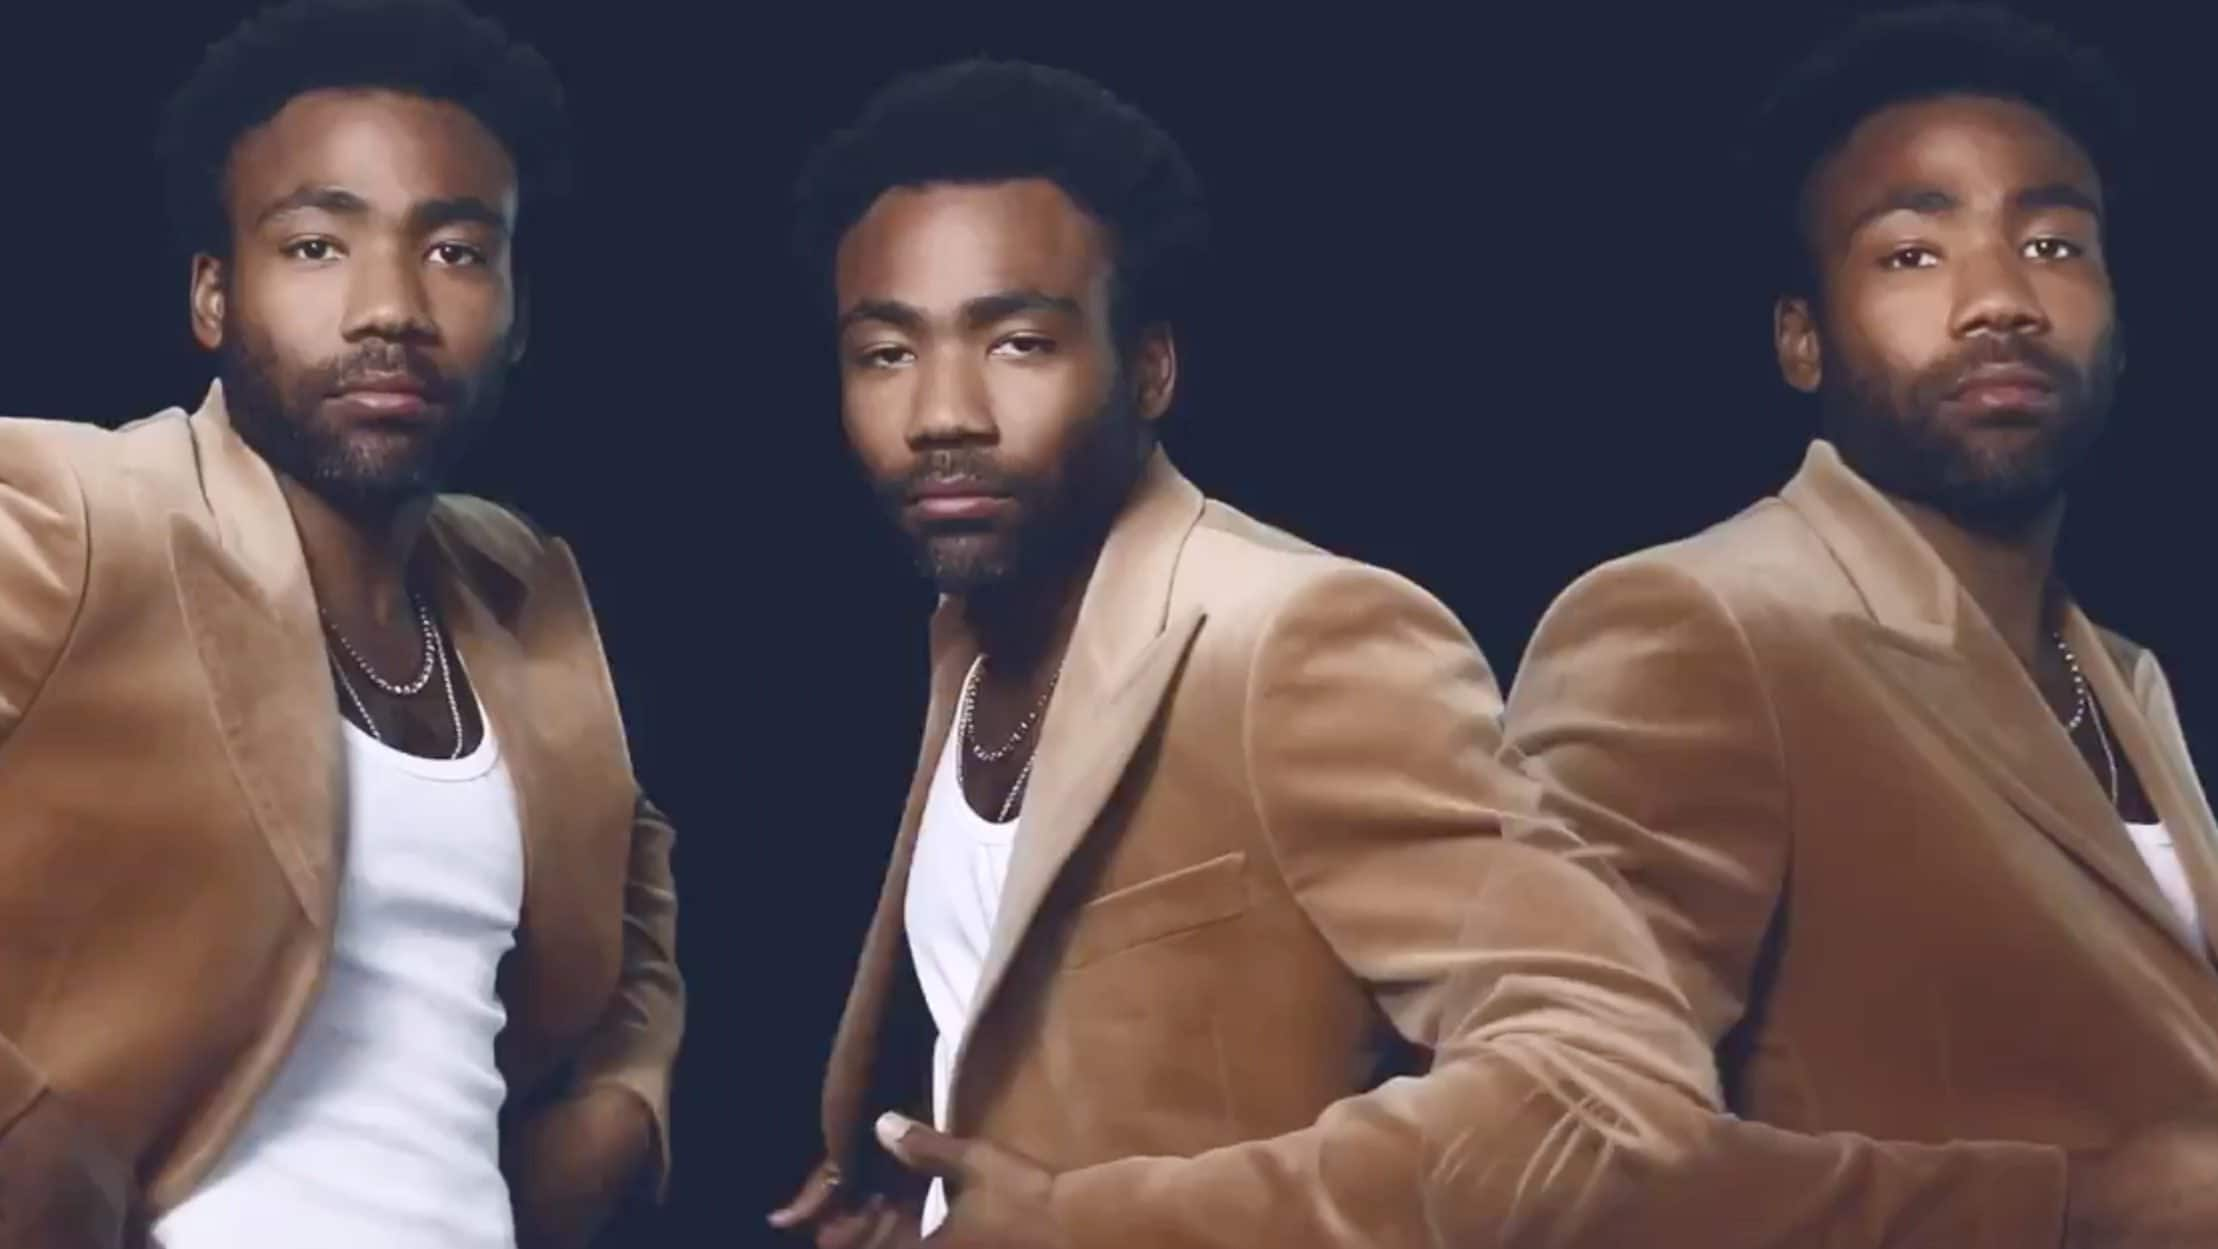 The new Childish Gambino video is spectacular